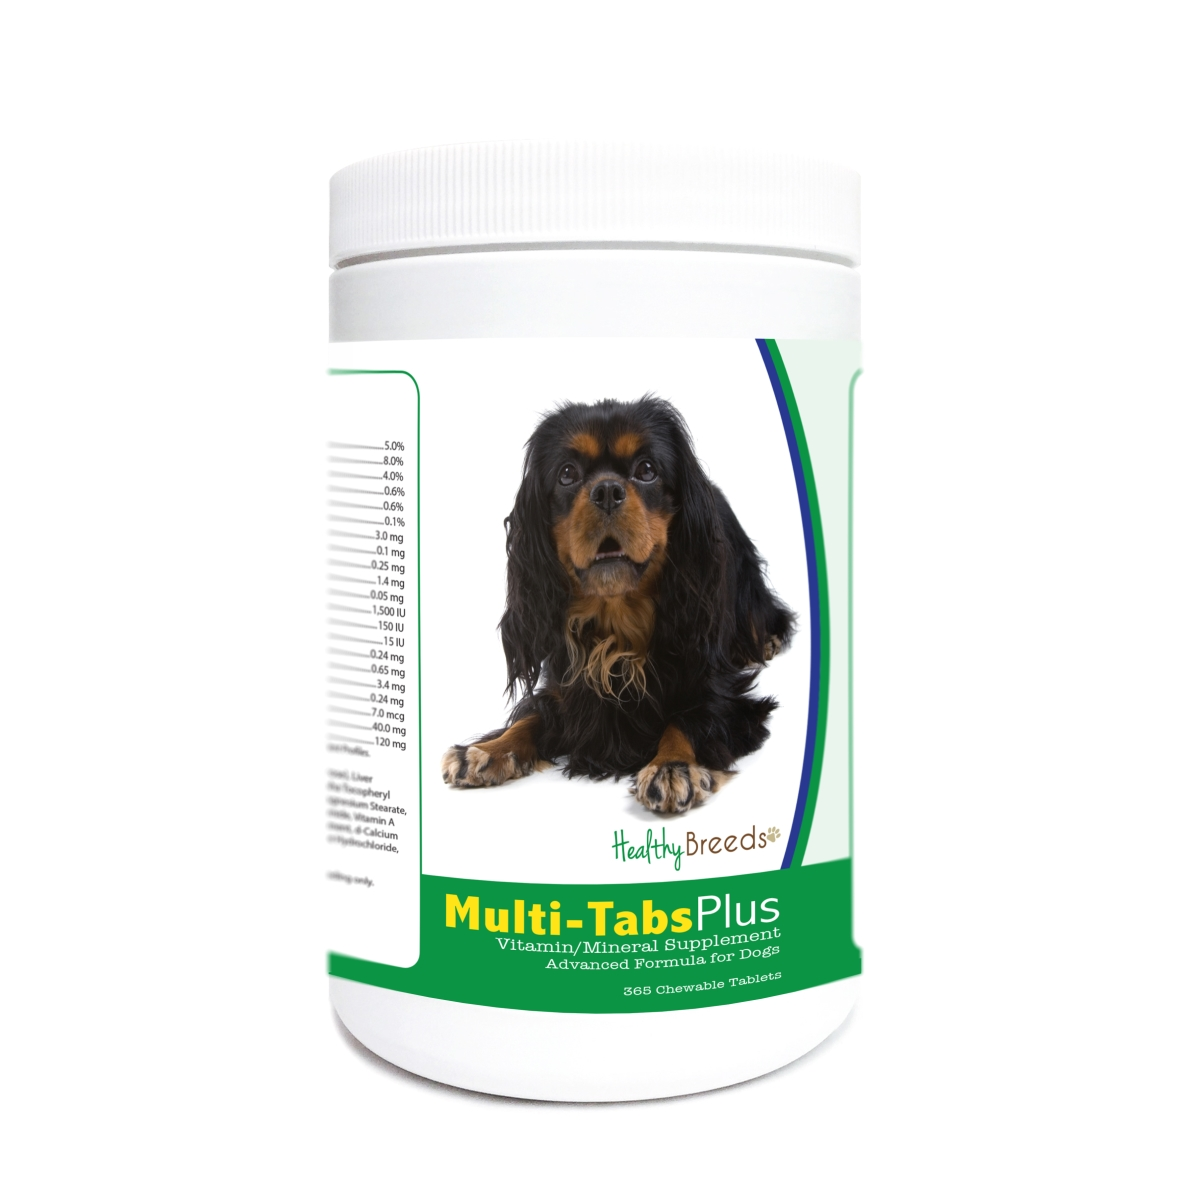 Healthy Breeds 840235182245 English Toy Spaniel Multi-Tabs Plus Chewable Tablets - 365 Count